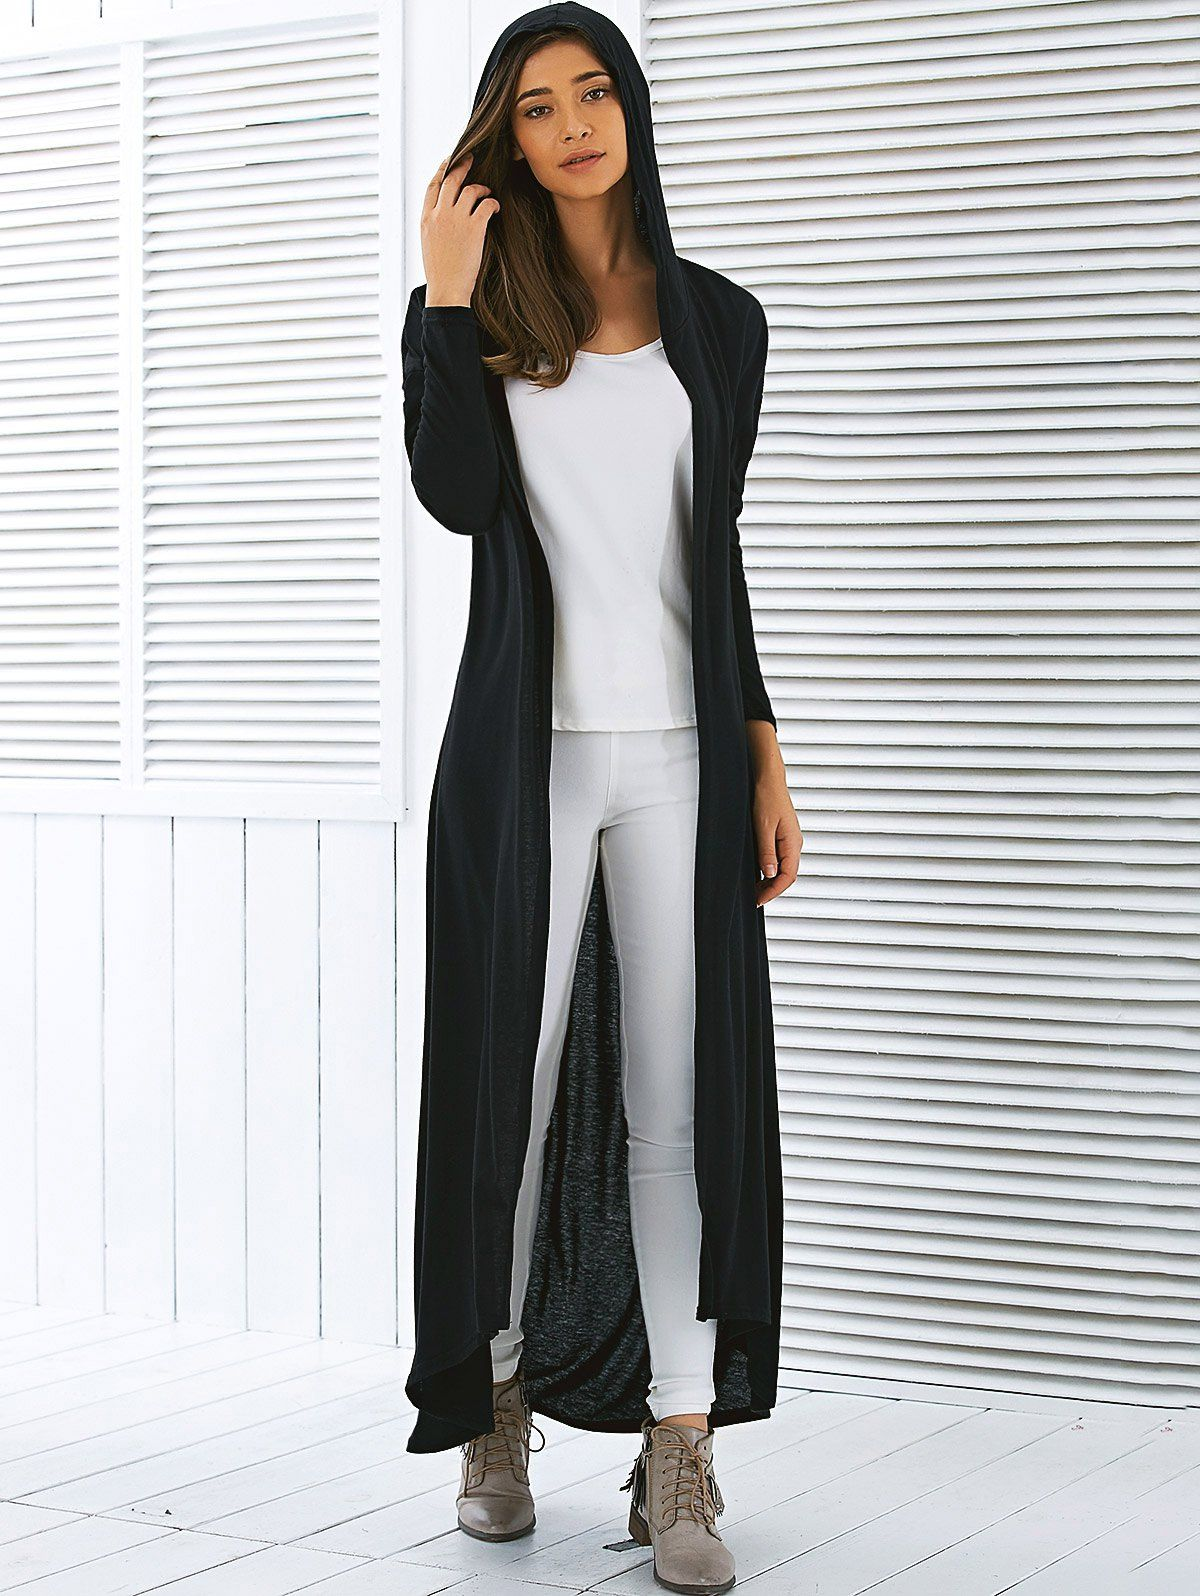 Hooded Long Sleeve Maxi Cardigan | Maxi cardigan, Long sleeve maxi ...